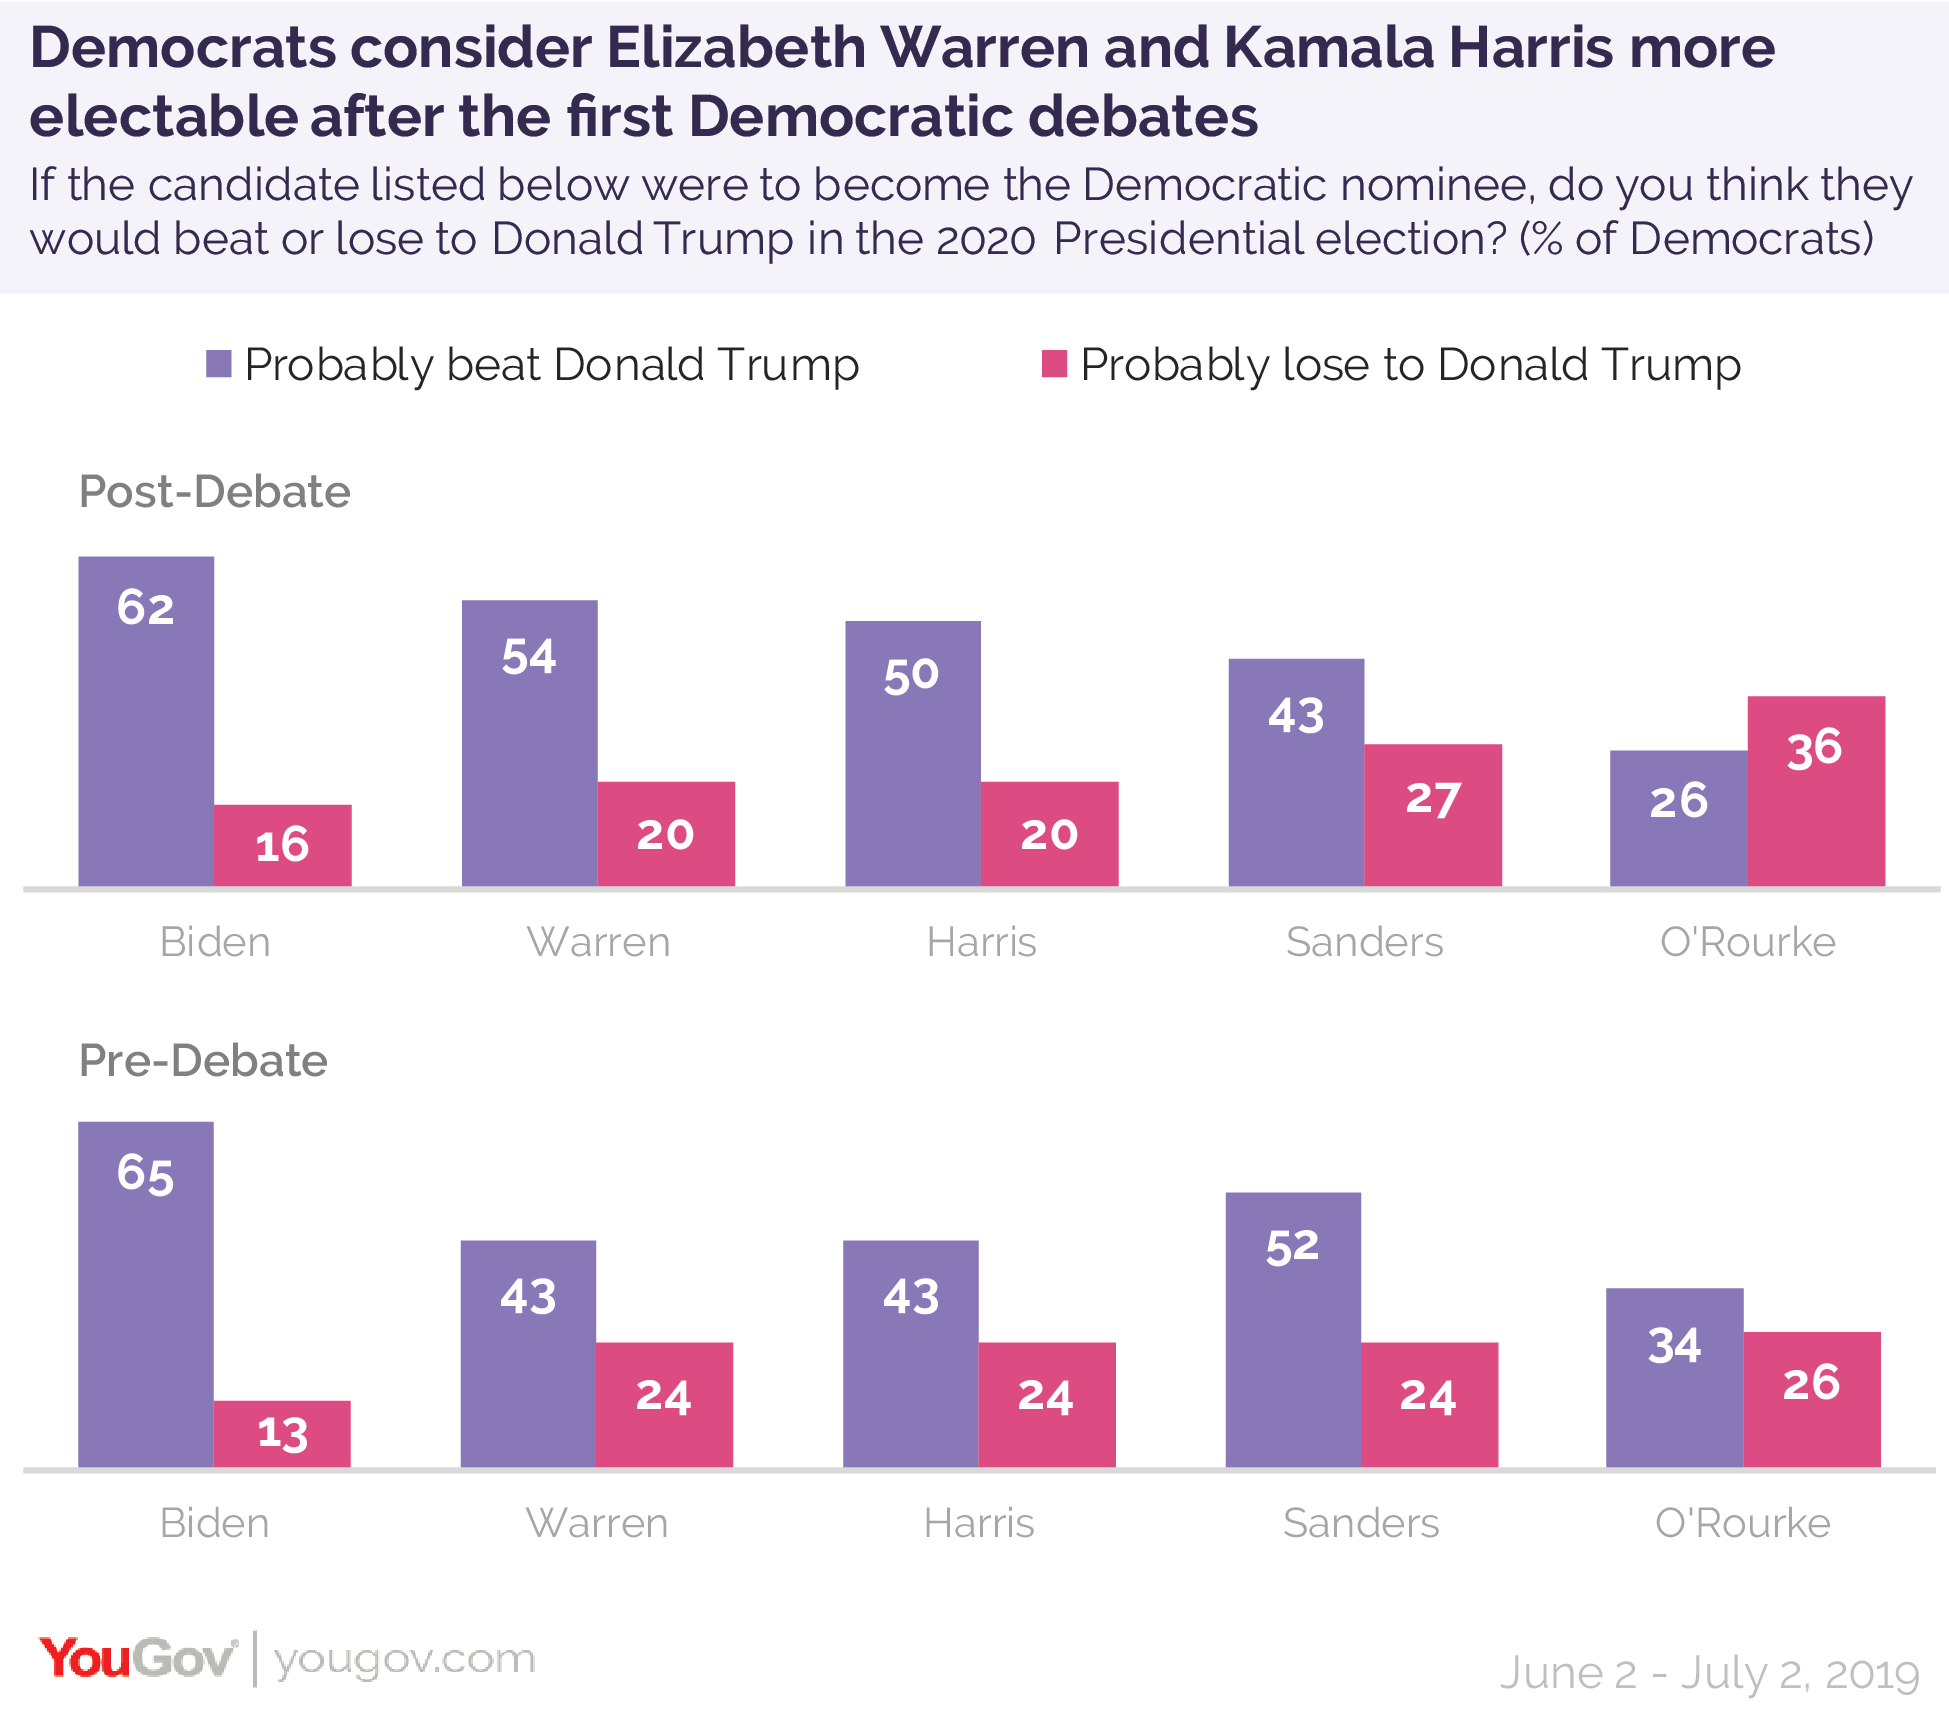 Democrats consider Elizabeth Warren and Kamala Harris more electable after the first Democratic debates